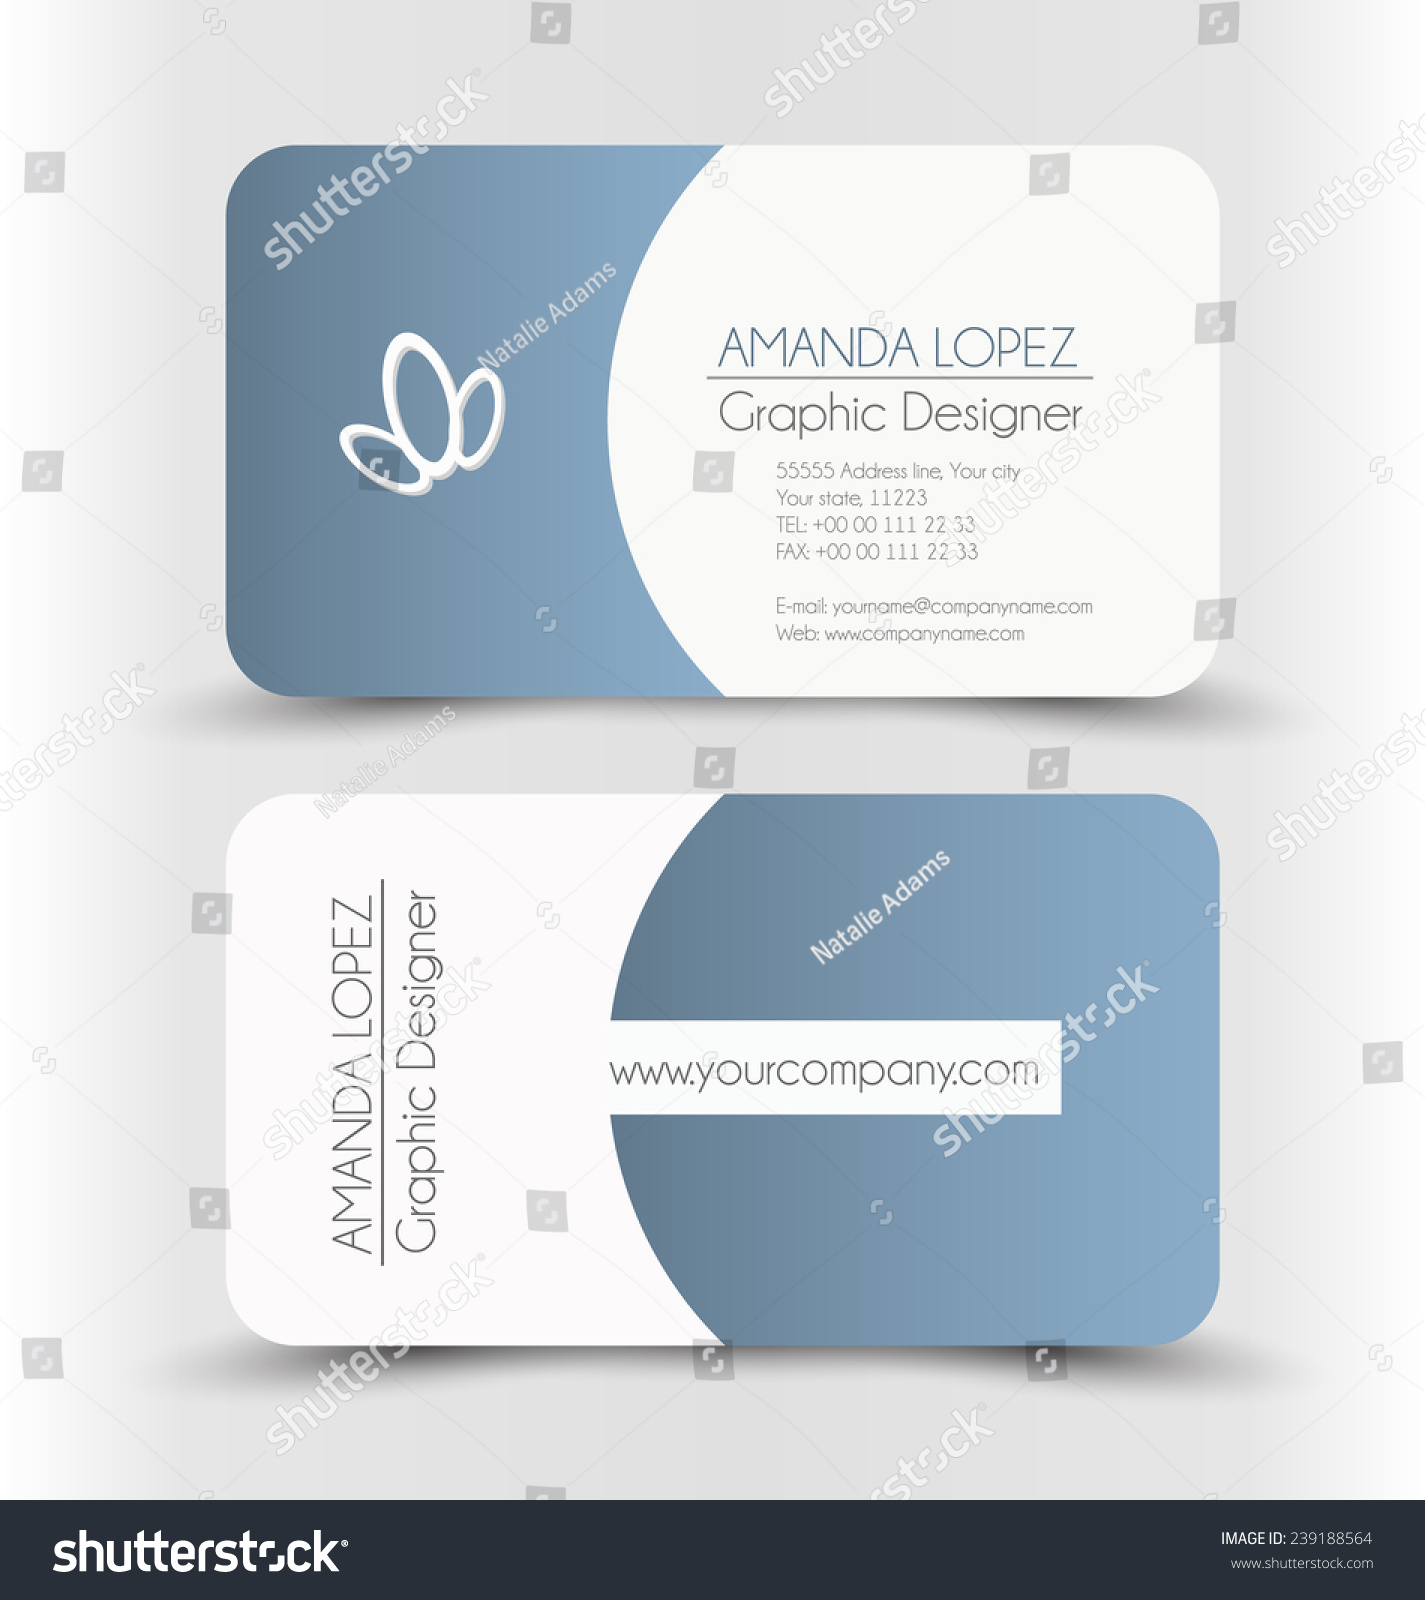 Business cards geebung qld gallery card design and card template dorable record label business cards crest business card ideas business cards geebung qld gallery card design reheart Images